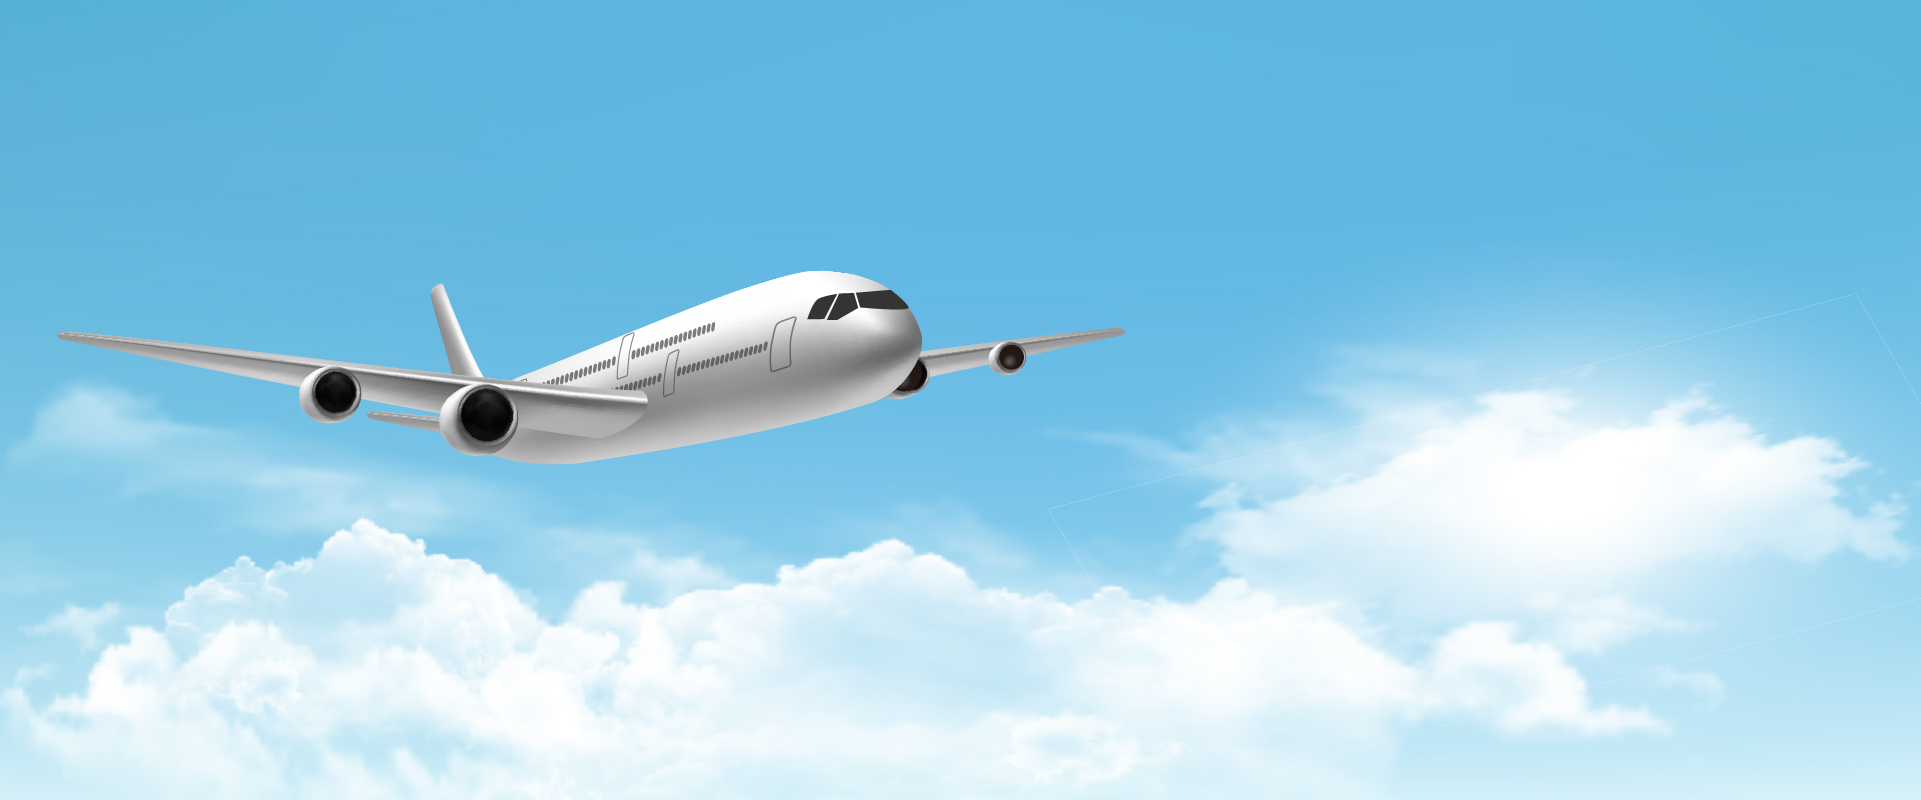 highflying airliner background  aircraft  clouds  blue sky